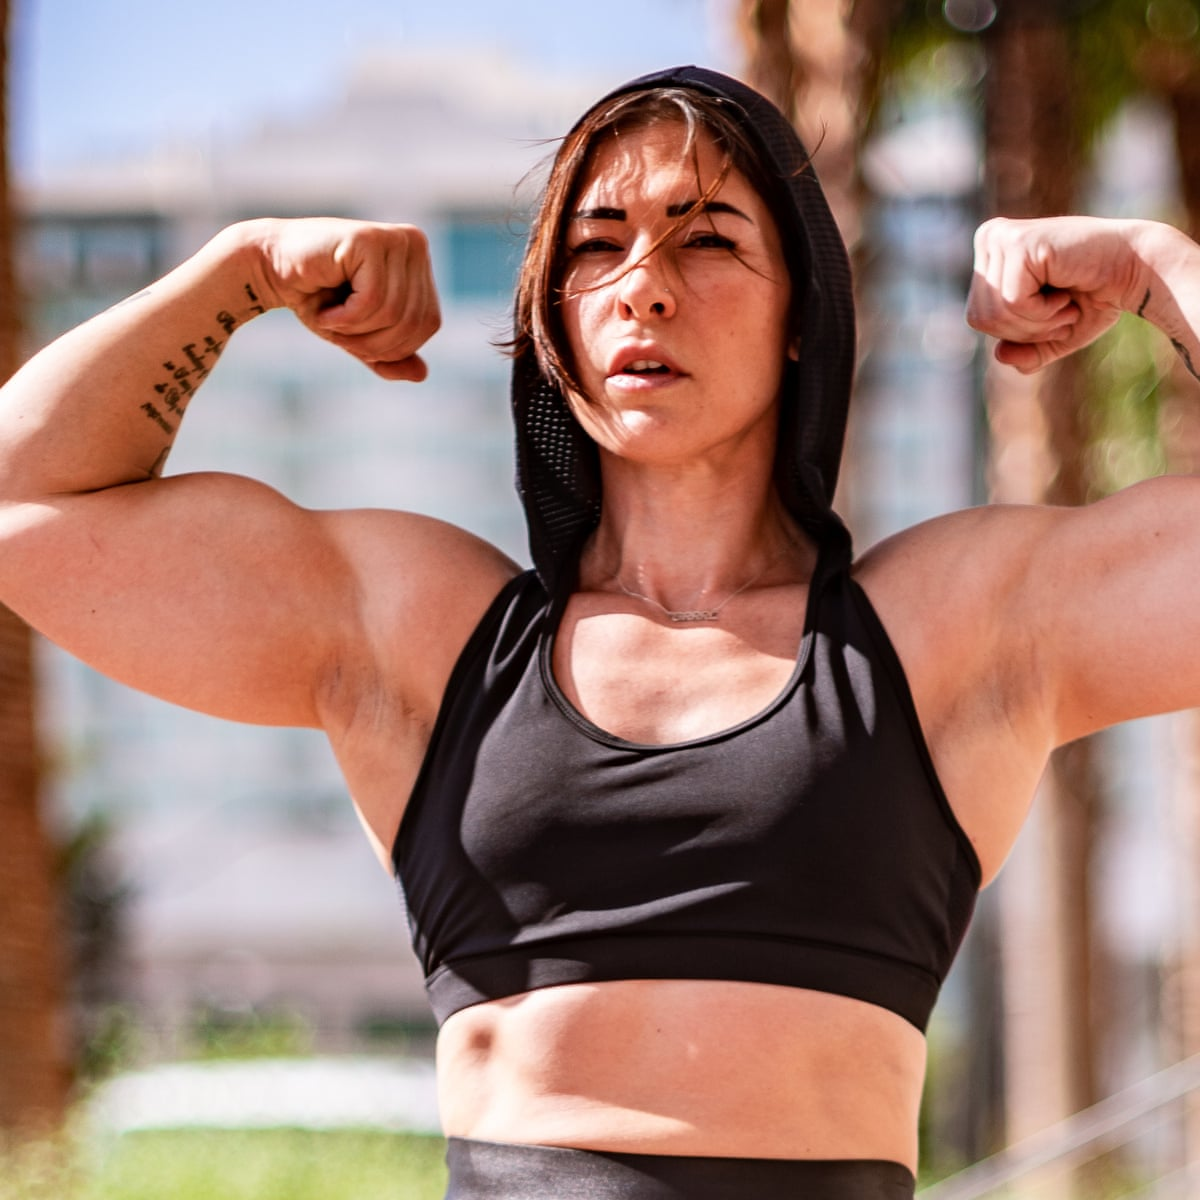 Muscl guy around sexy girls holding them Kortney Olson Is Crushing It It S About Them Experiencing True Female Strength Life And Style The Guardian